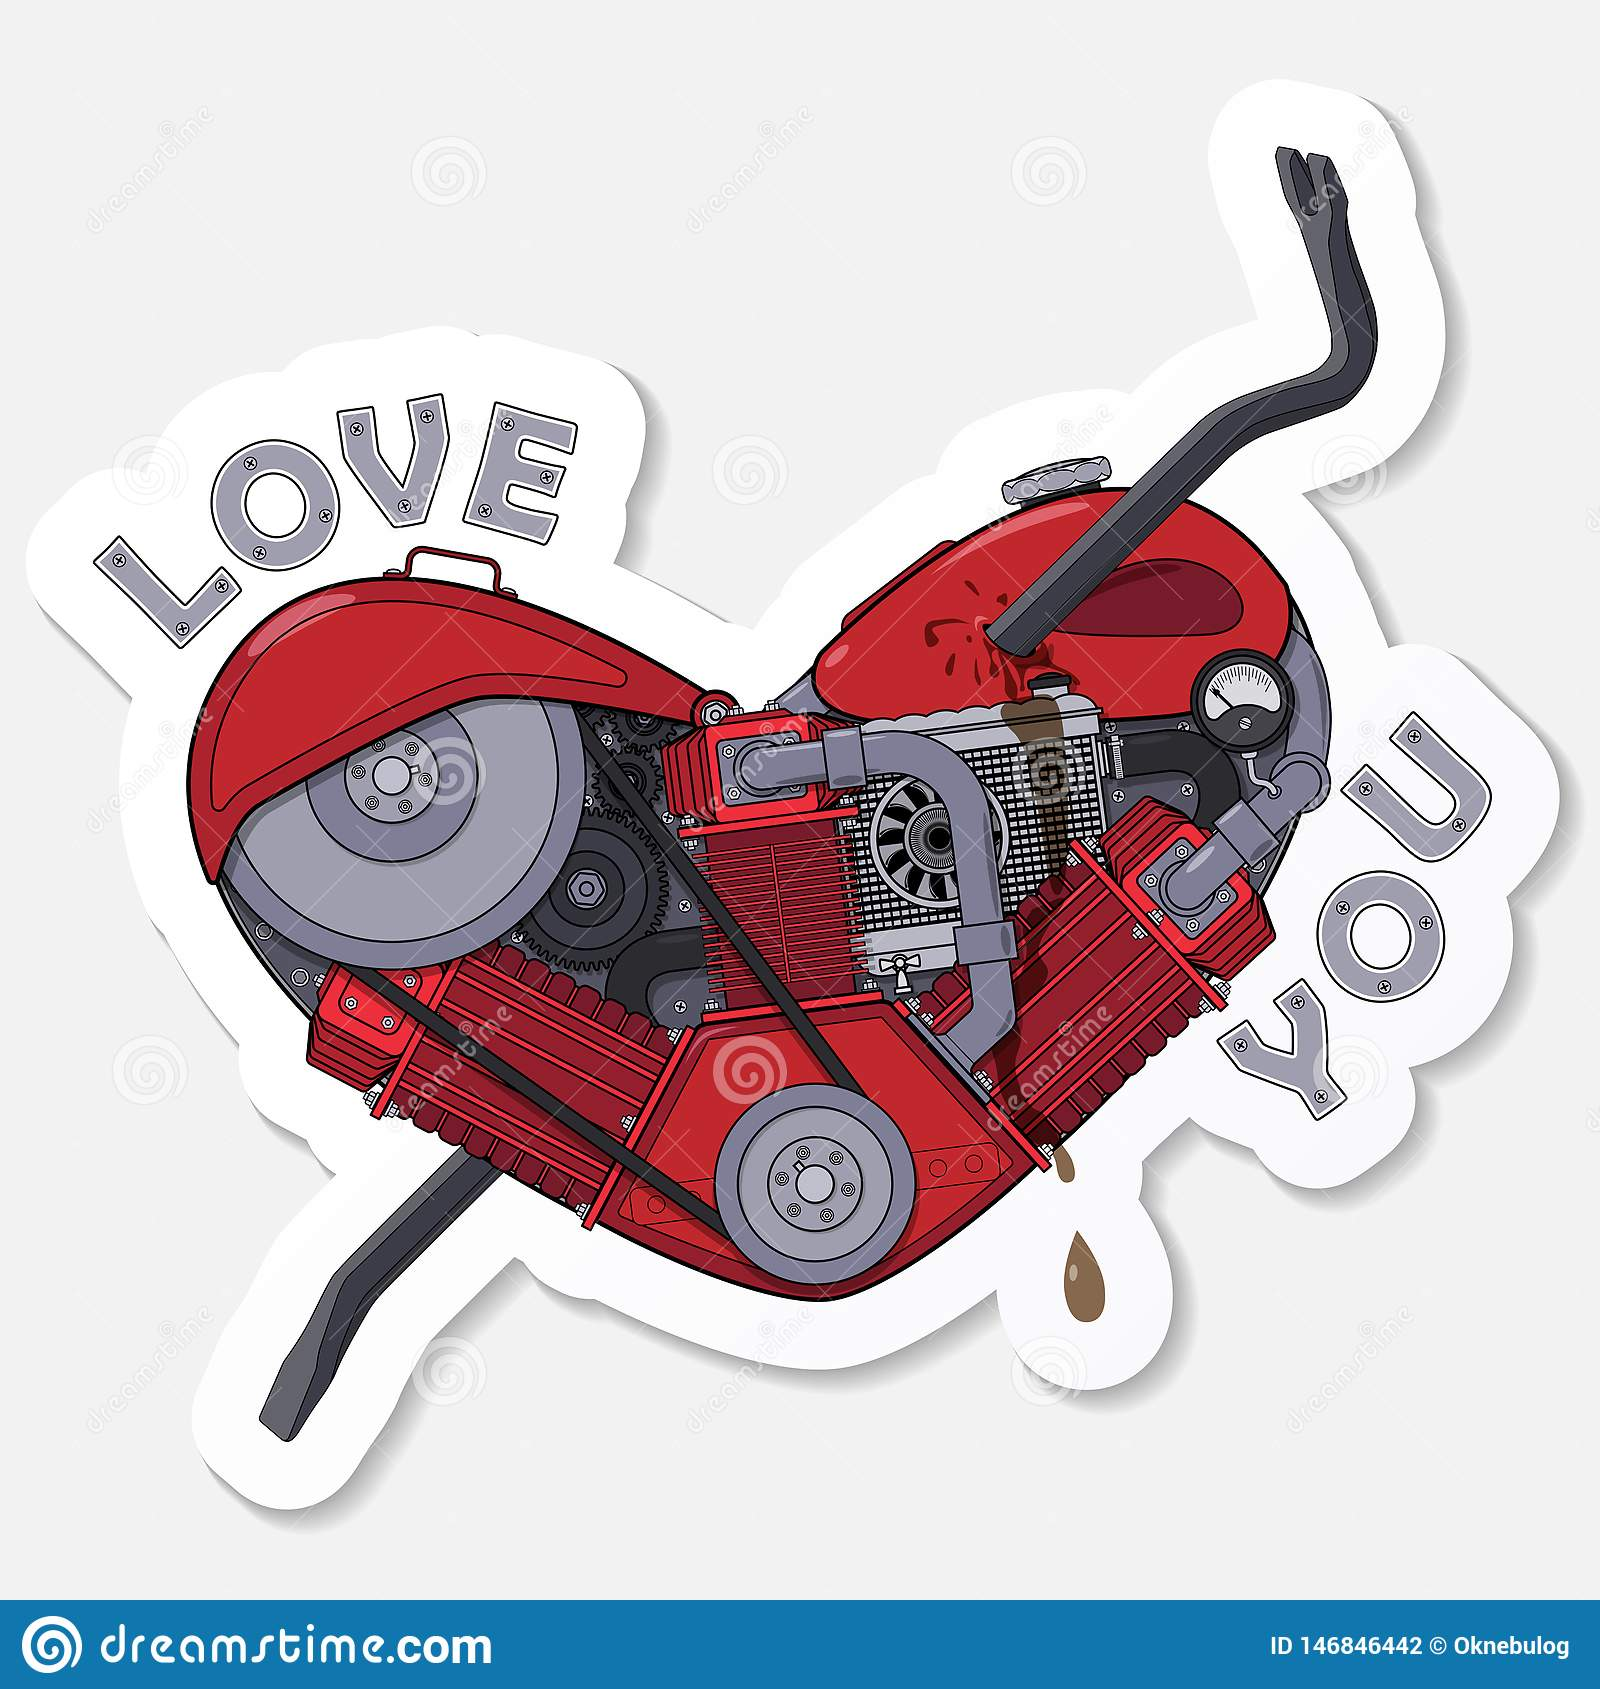 Love You. Sticker for messenger. Motor heart pierced with a crowbar. Vector